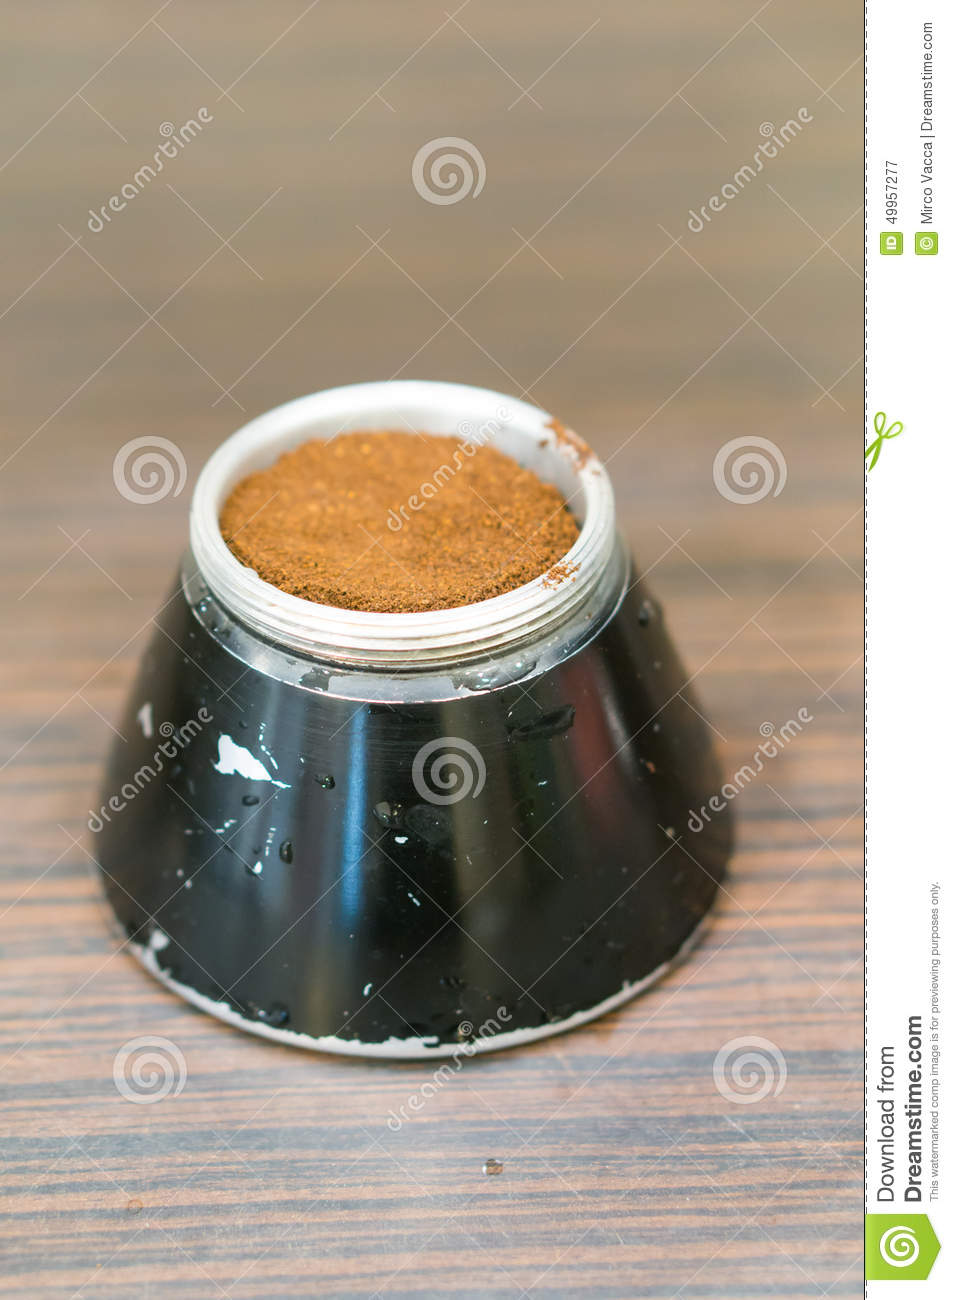 ground coffee stock photo - photo #36